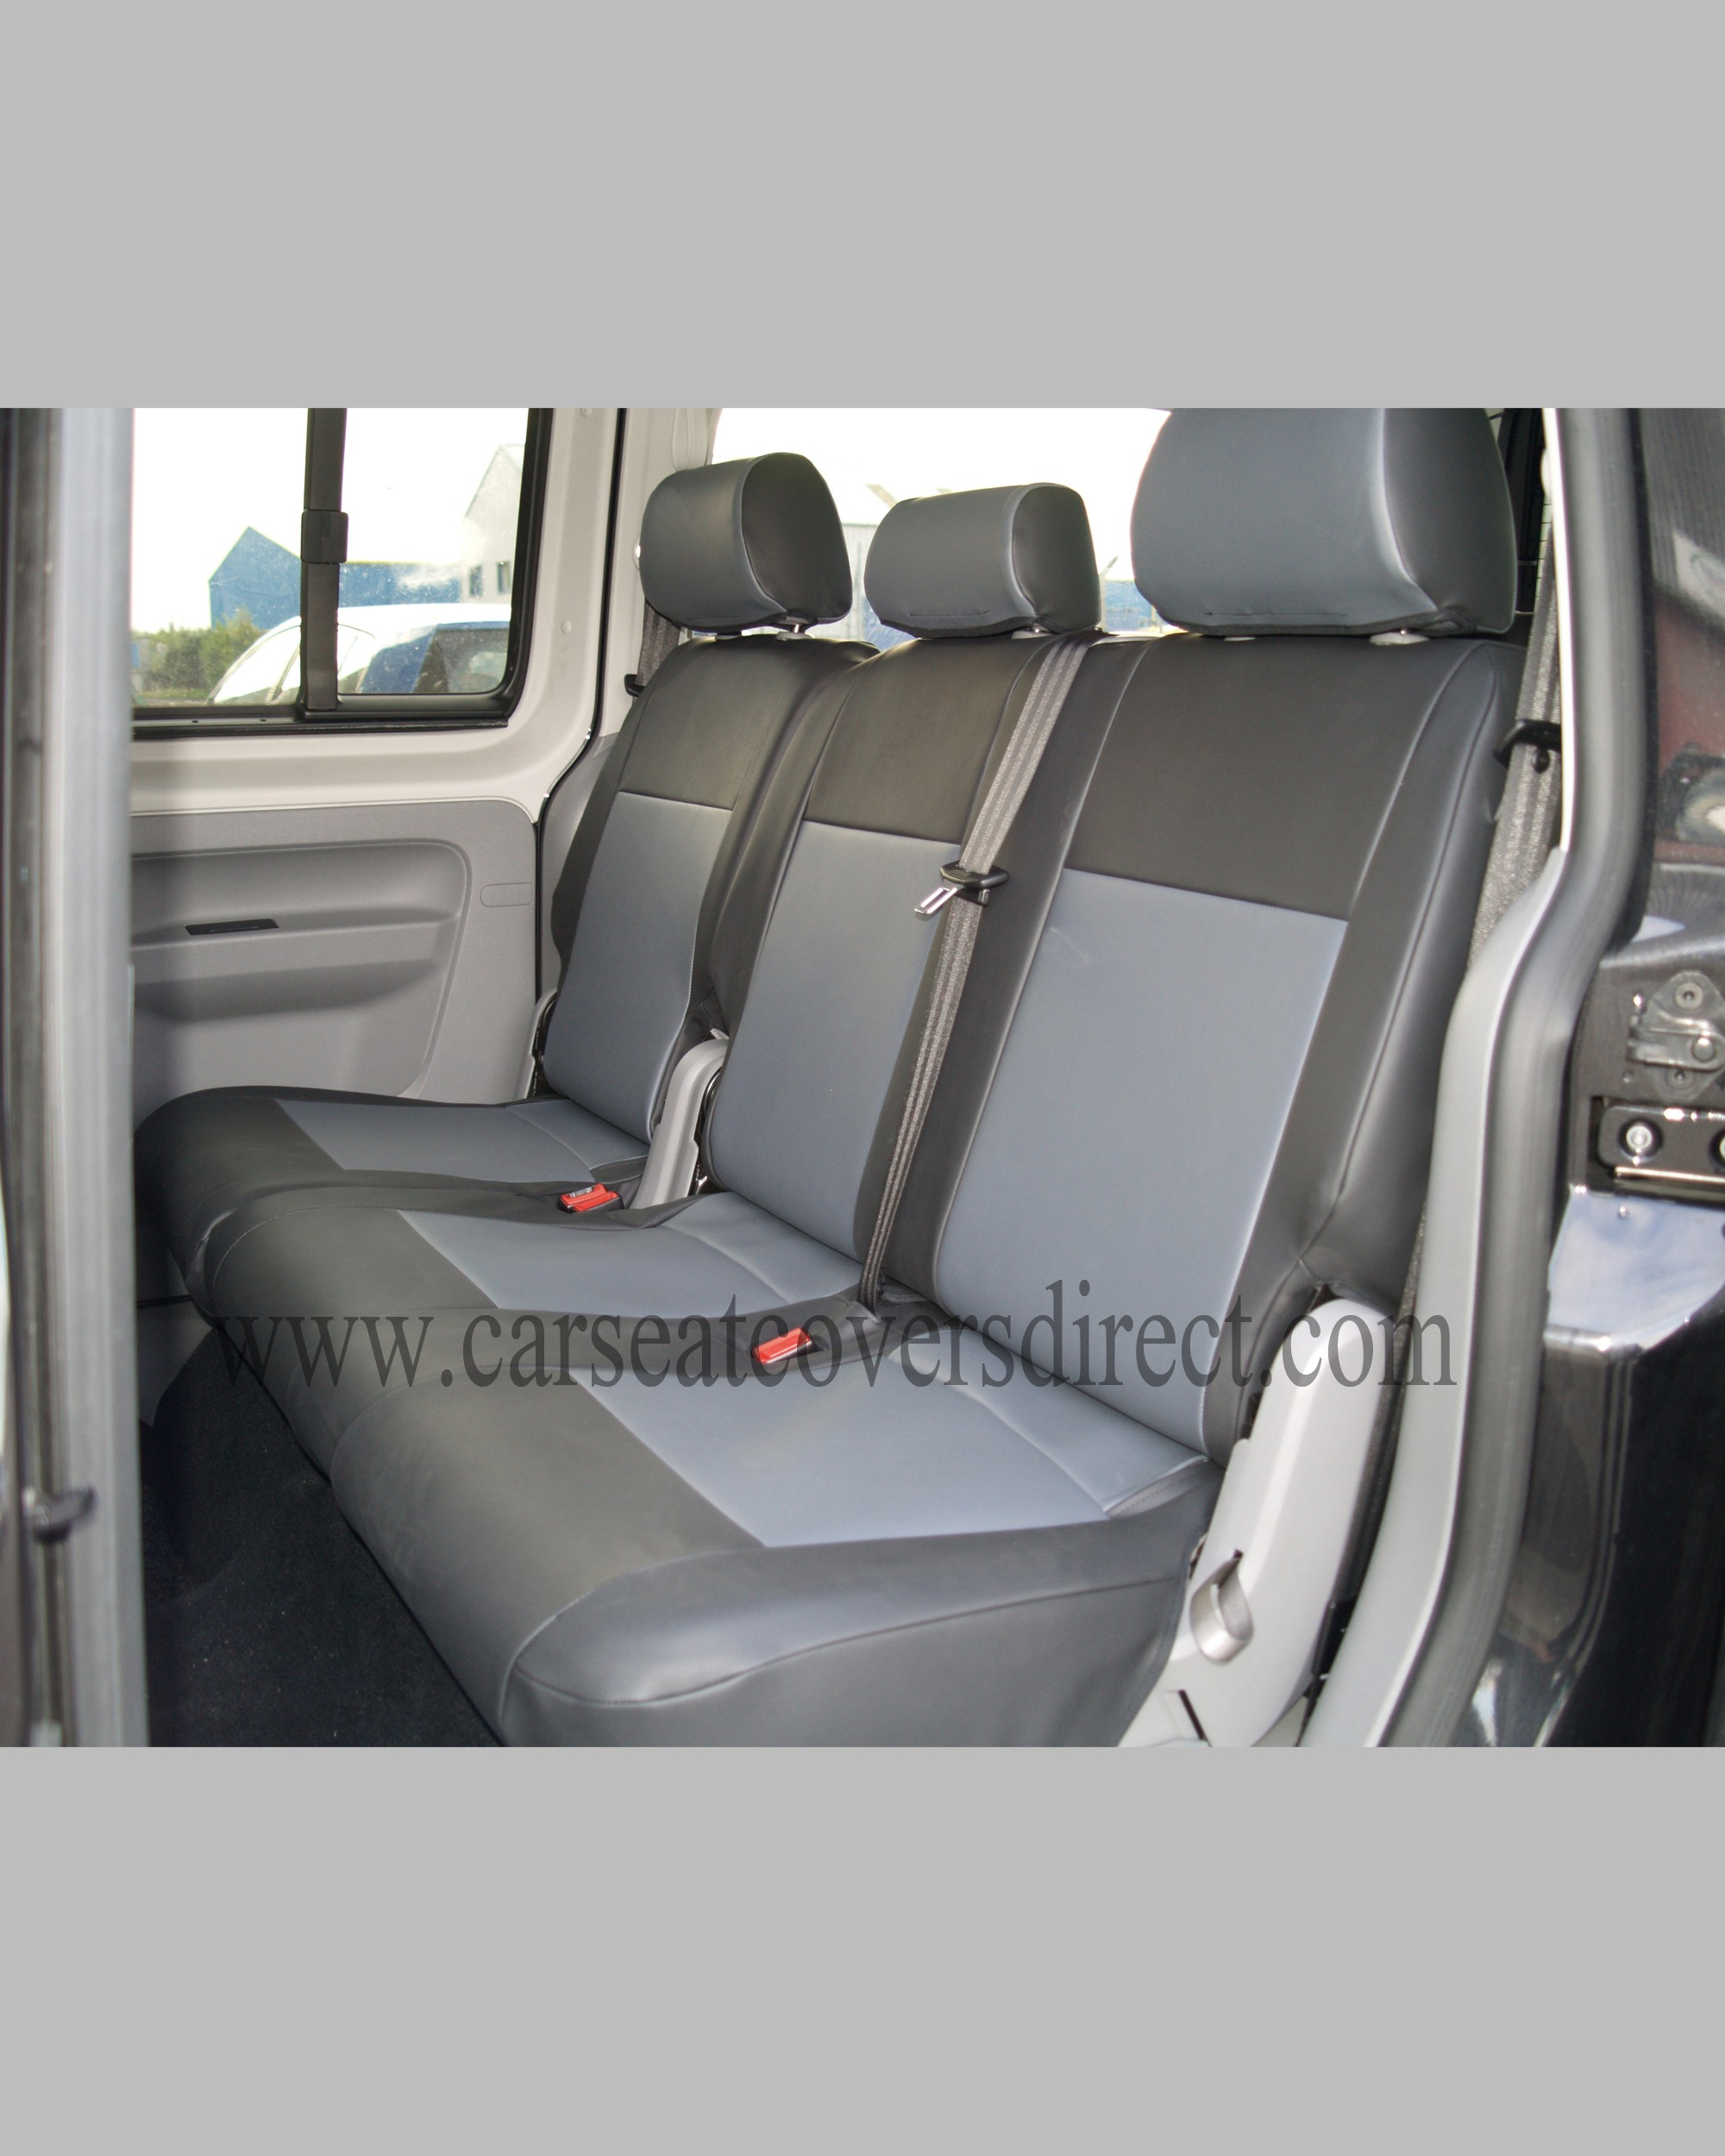 VOLKSWAGEN VW Caddy Life Black Amp Grey Seat Covers Car Seat